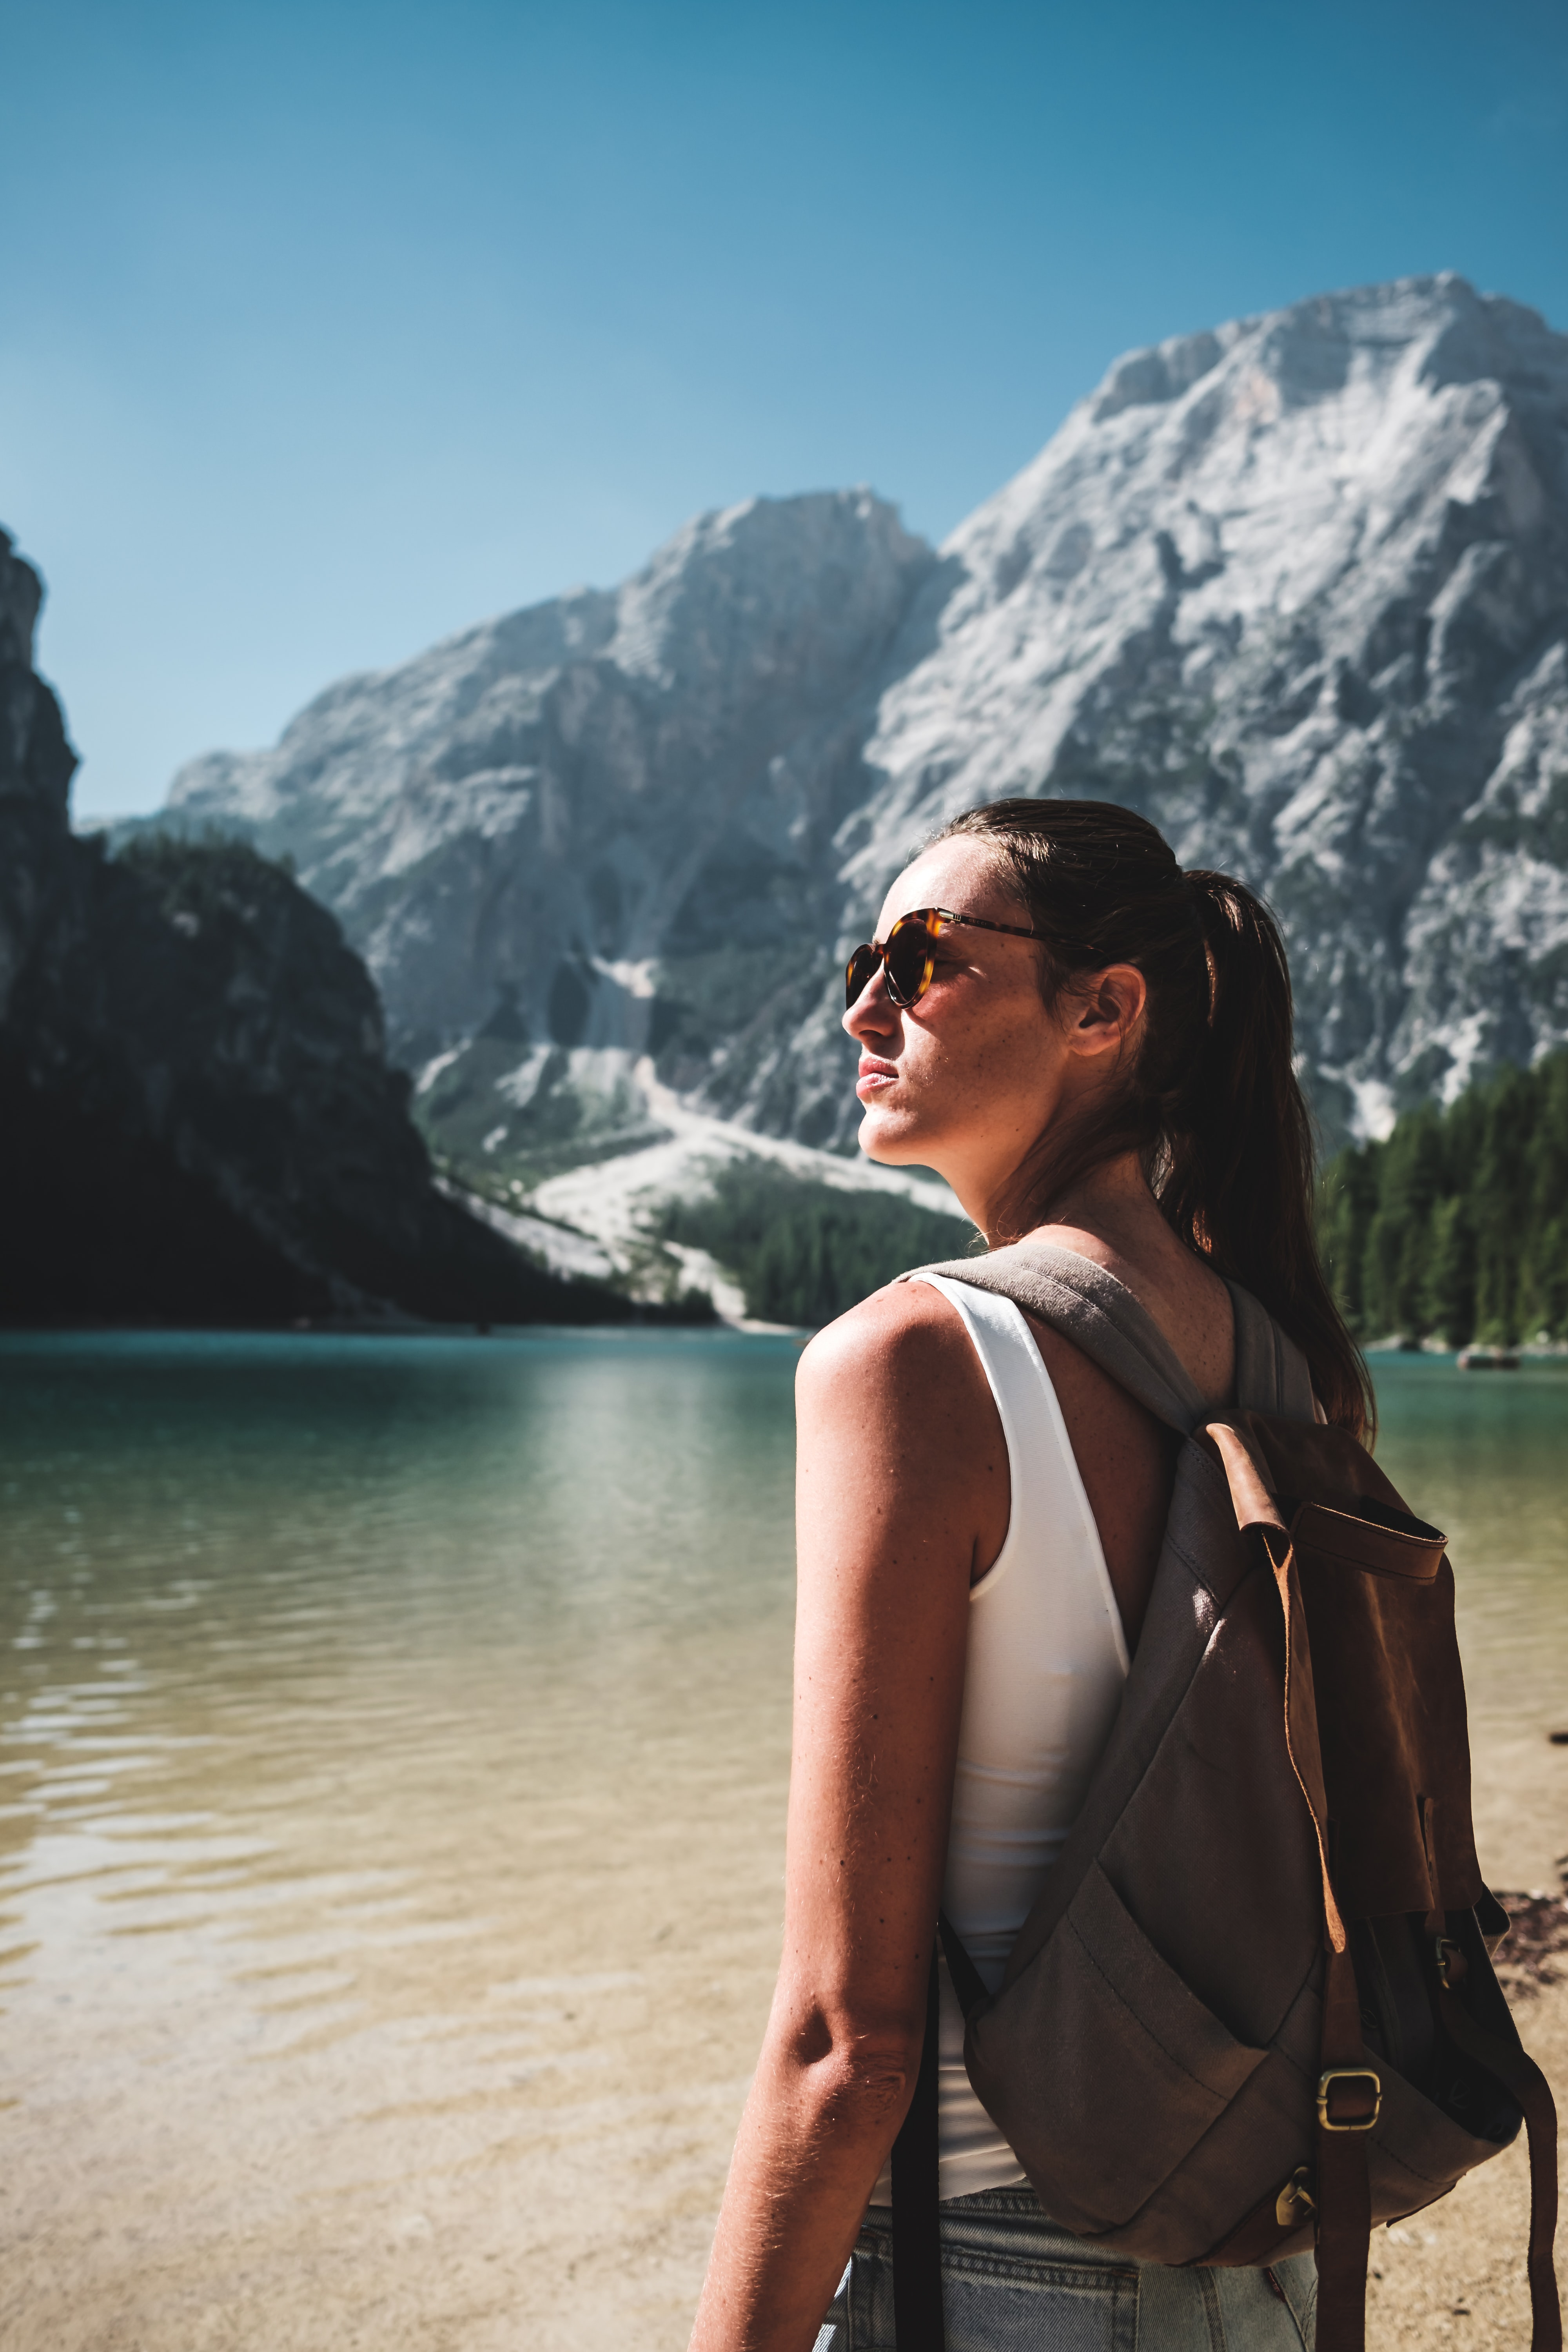 photo of woman wearing white tank top and gray backpack standing near body of water